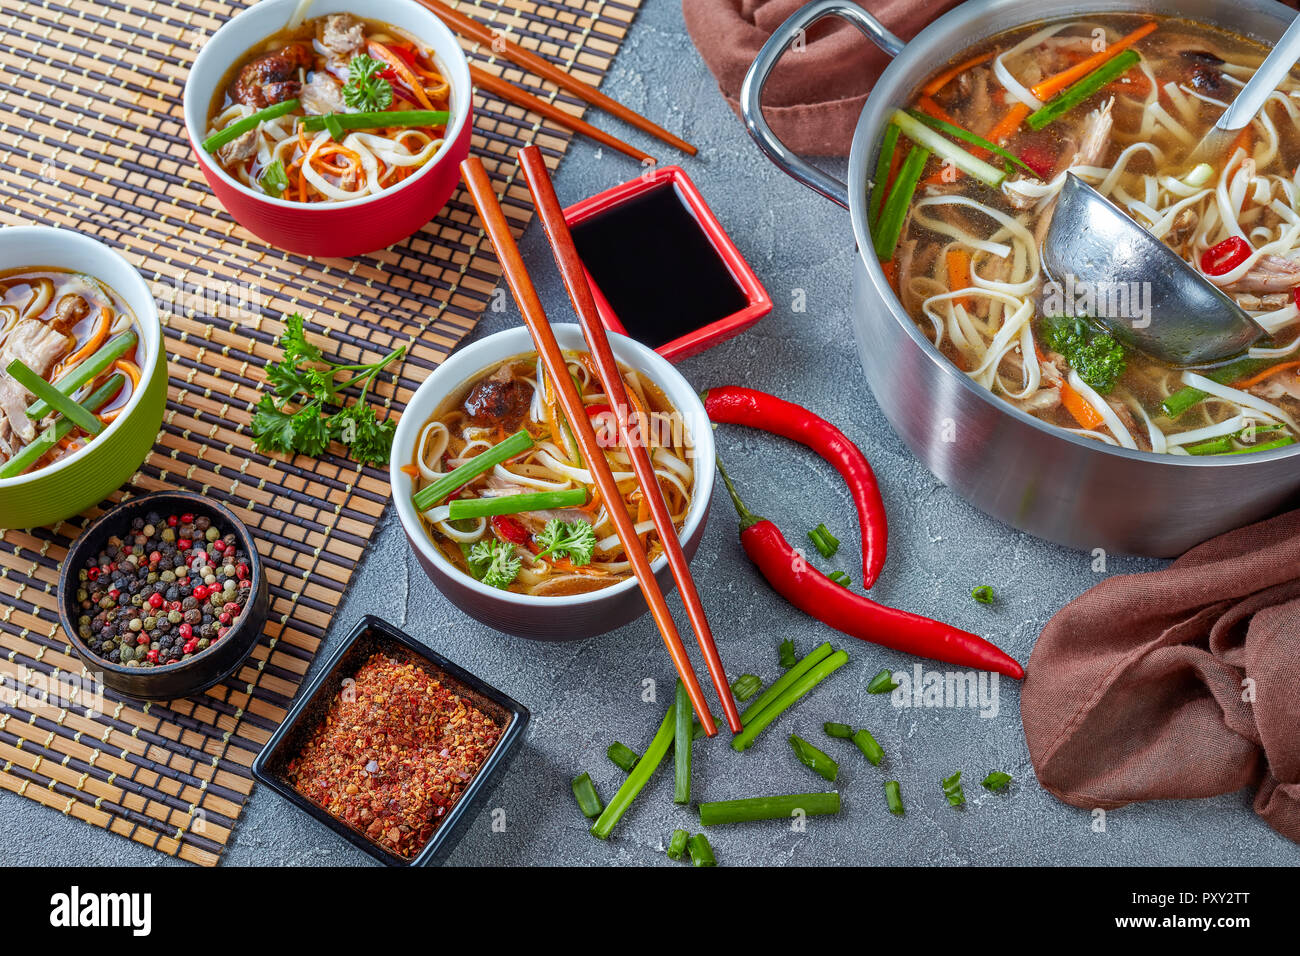 poultry udon noodle vegetables soup in a metal casserole and served in bowls on bamboo mat with chopsticks, view from above, close-up - Stock Image